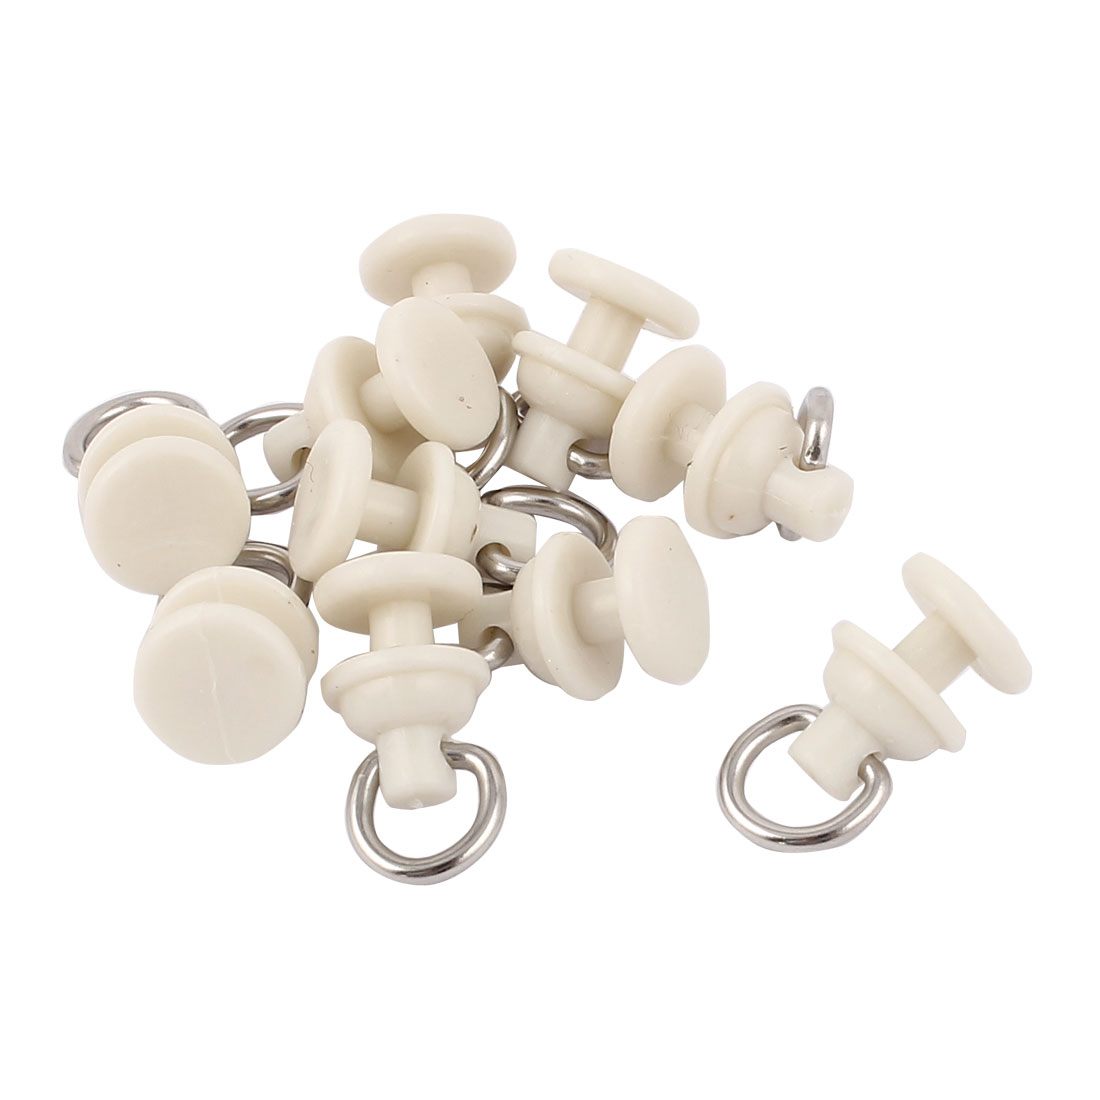 UXCELL High Quality 10Pcs/lot 7mm Oval Ring Plastic Metal Window Curtain Track Carrier Slide Wheels Rollers Beige 22 X 11mm